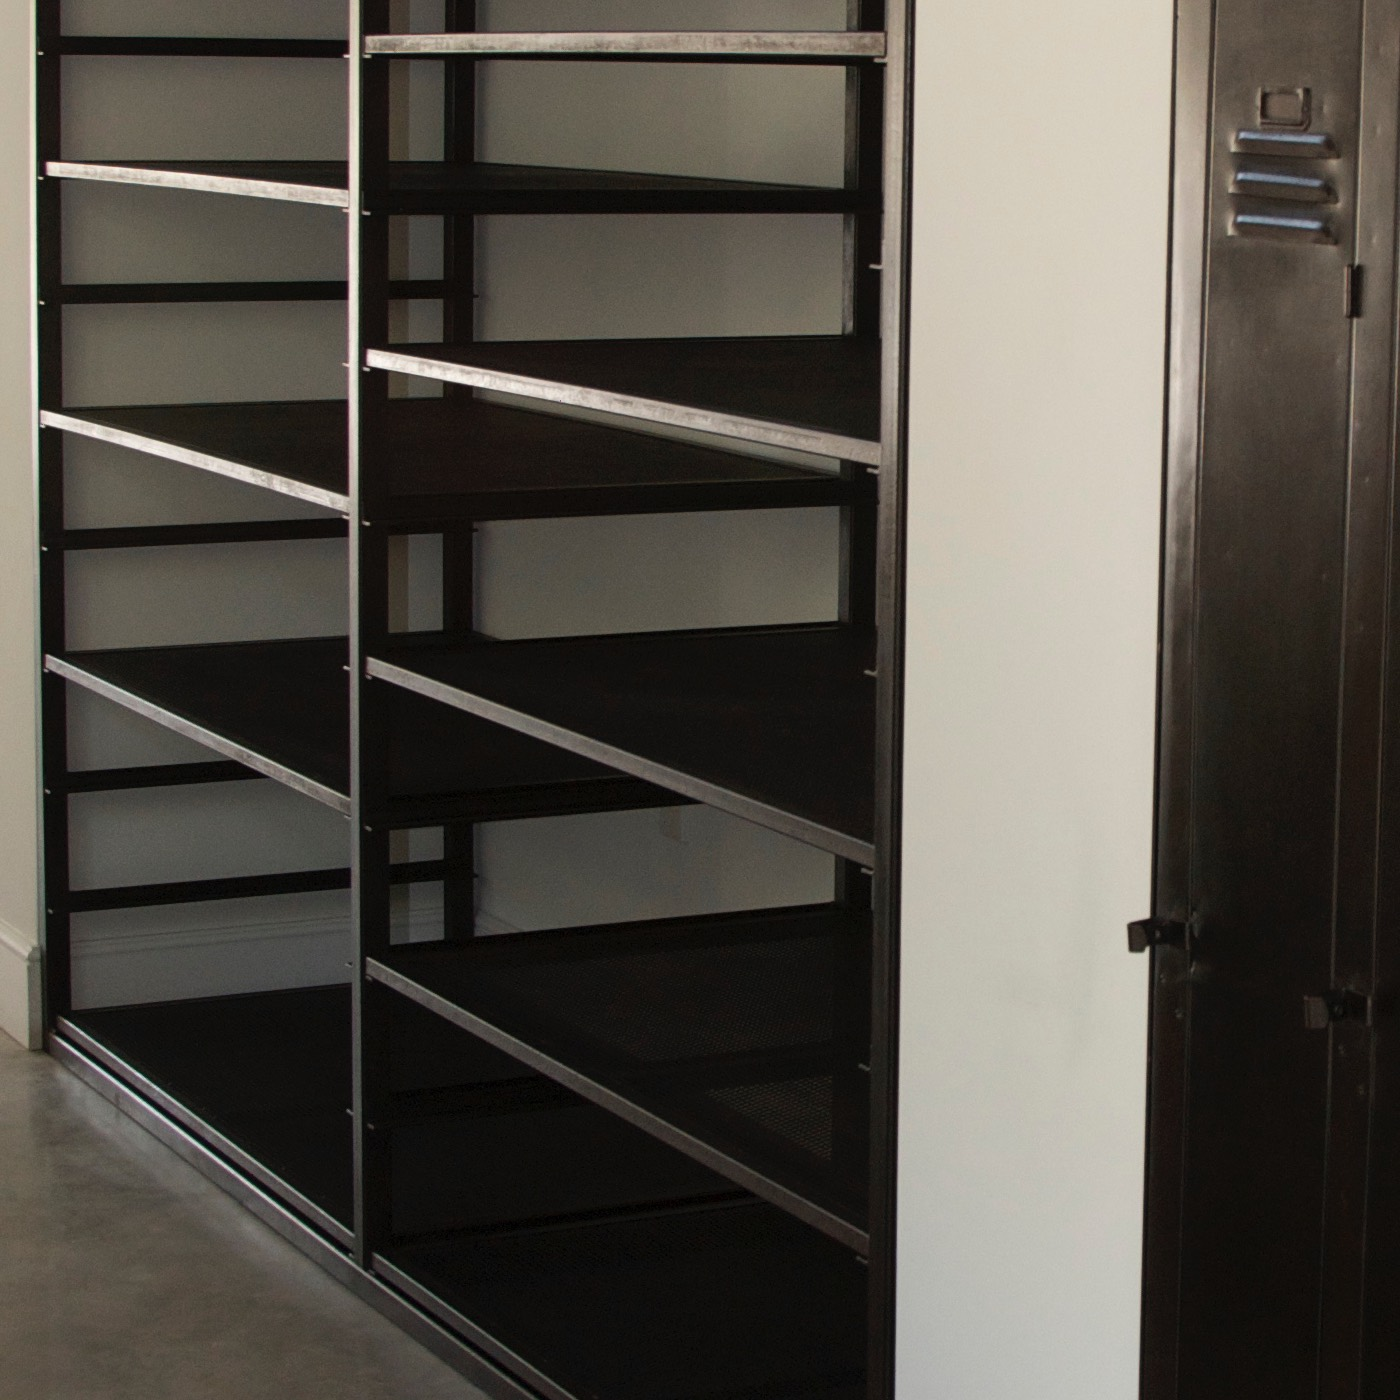 Bespoke Kitchen Shelving & Boot Room Storage